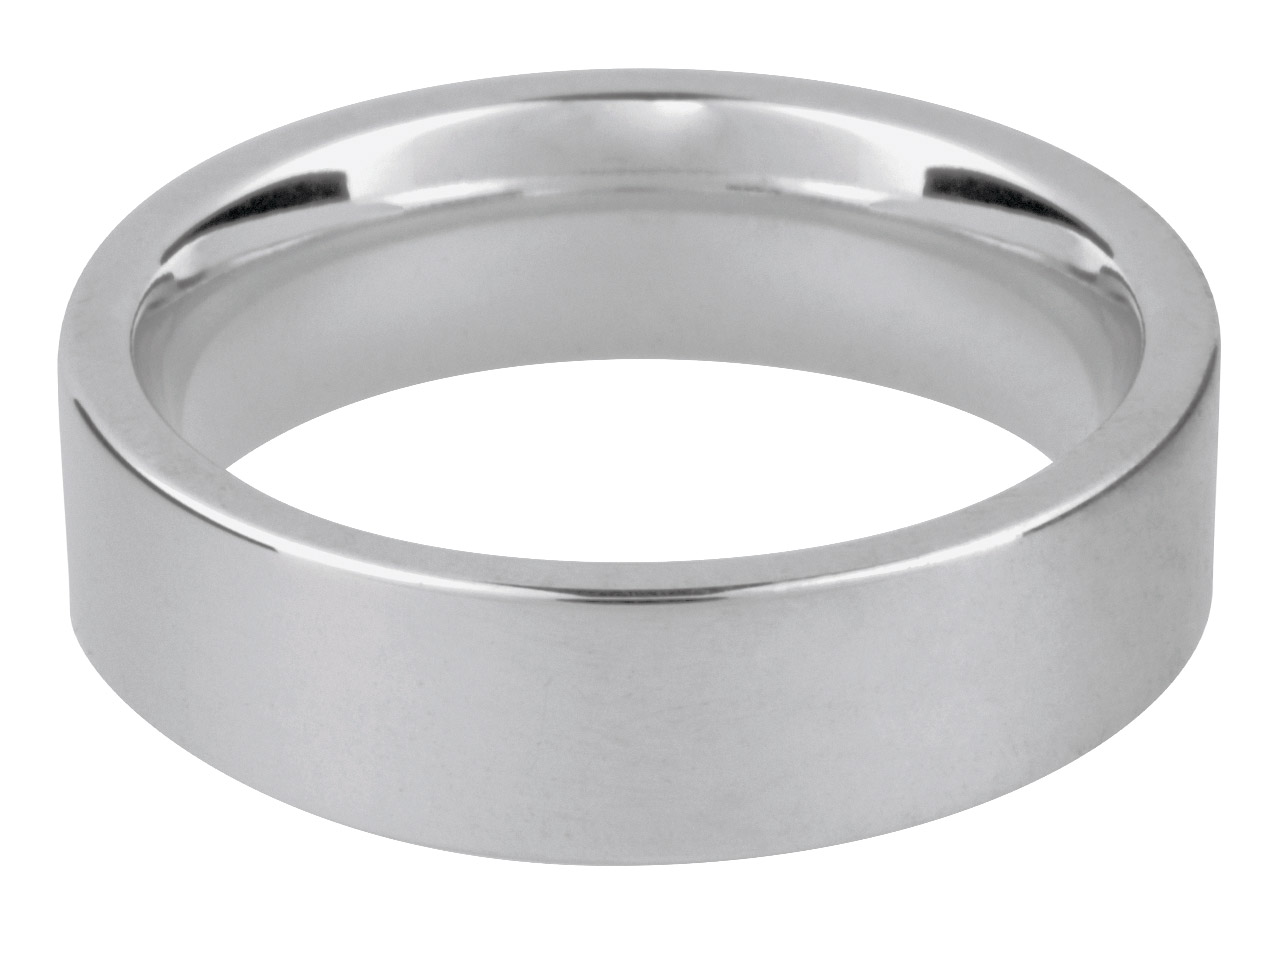 Platinum Easy Fit Wedding Ring     4.0mm X 10.7gms Heavy Weight       Hallmarked Wall Thickness 1.86mm